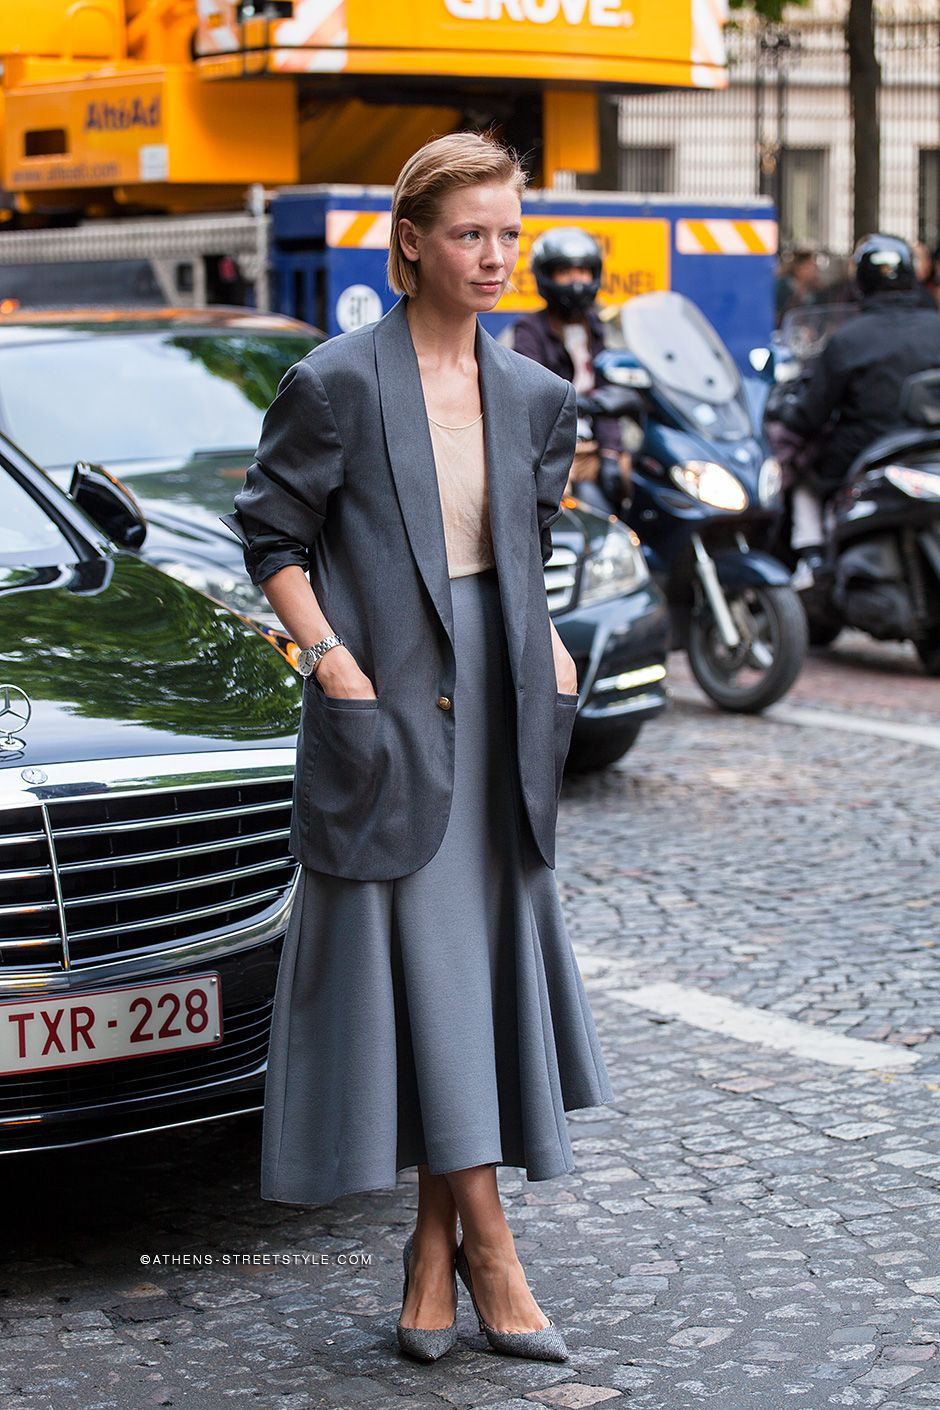 Image result for oversized blazer street style